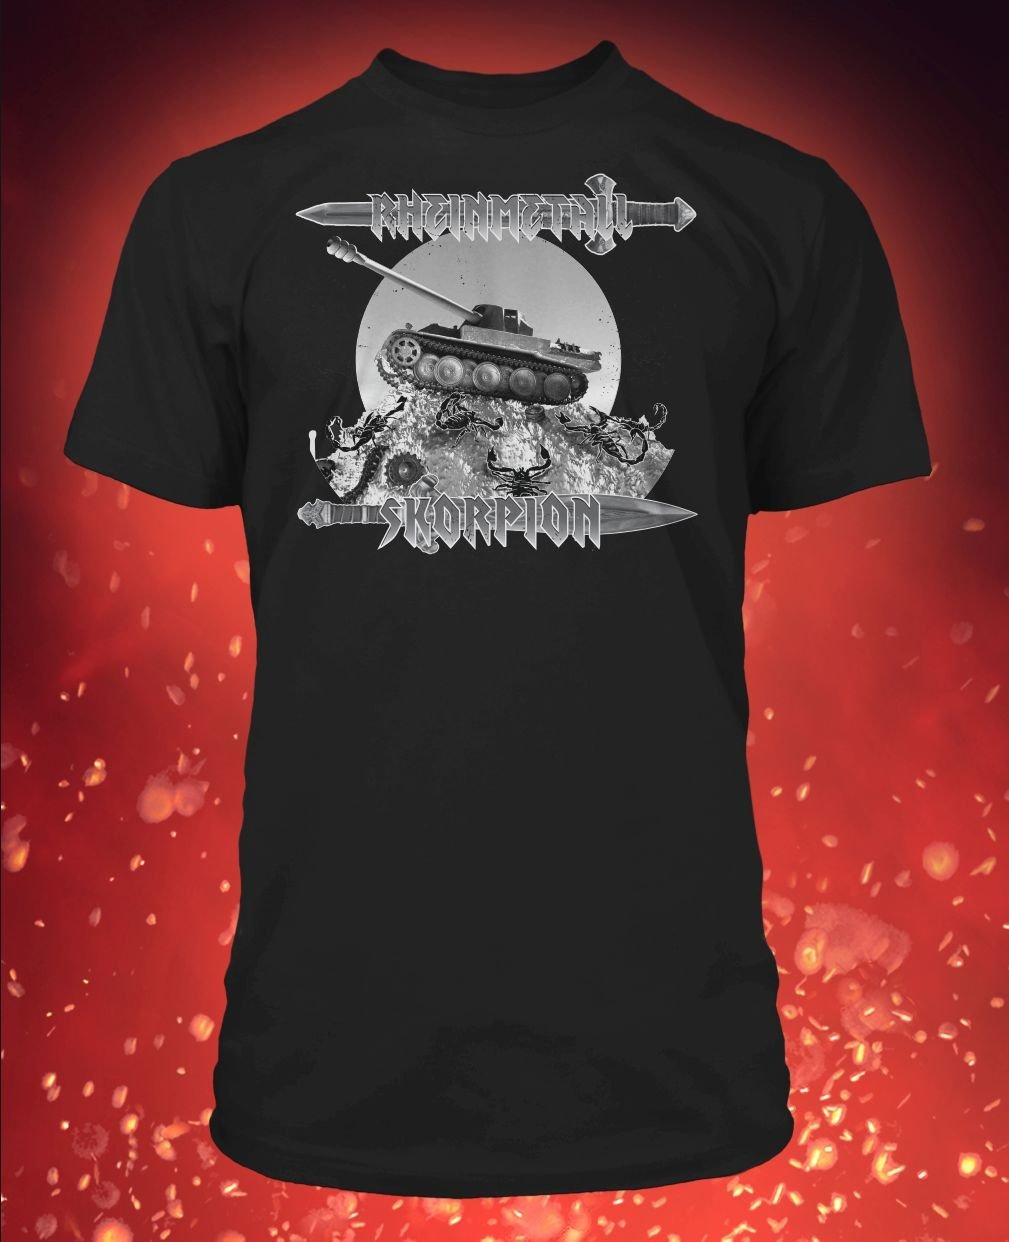 Challenge chips Military and unique Tshirts Business